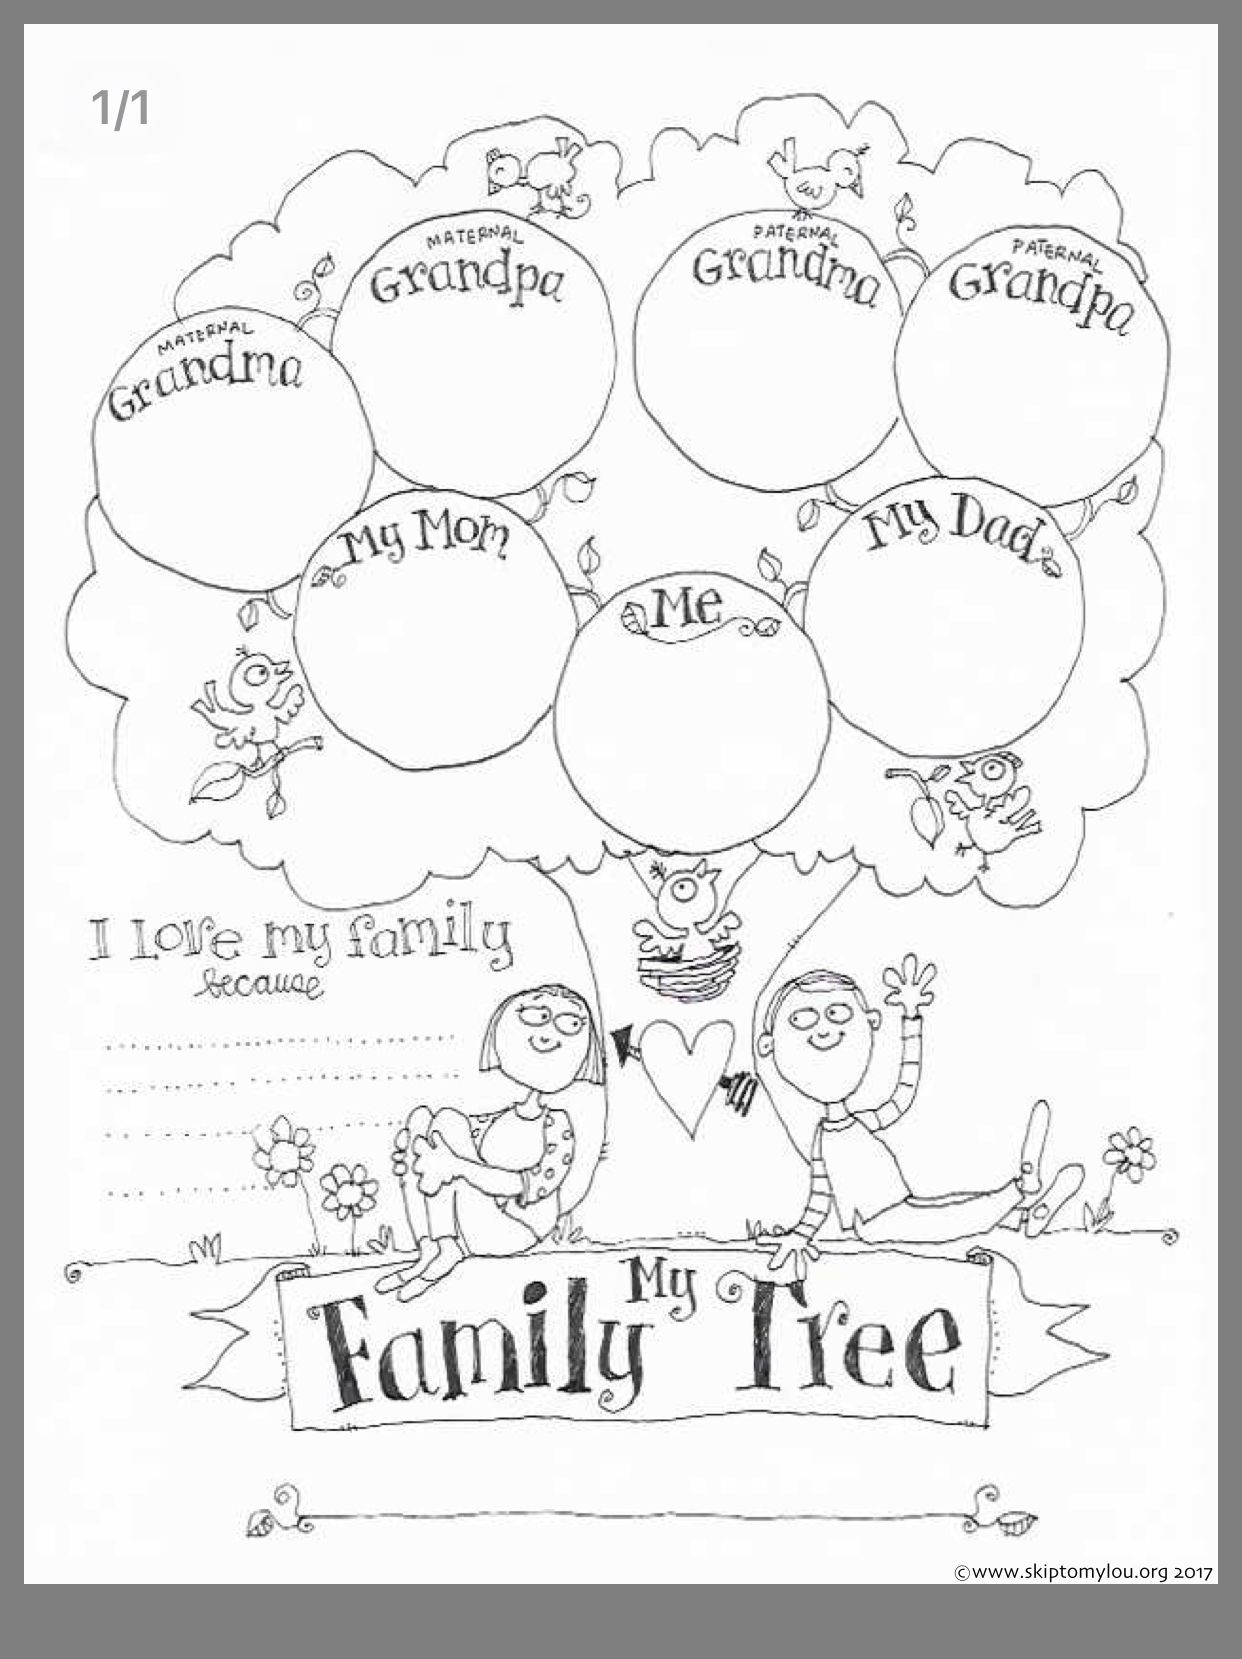 Family Tree Activity Image By Hsu Annie On Kid